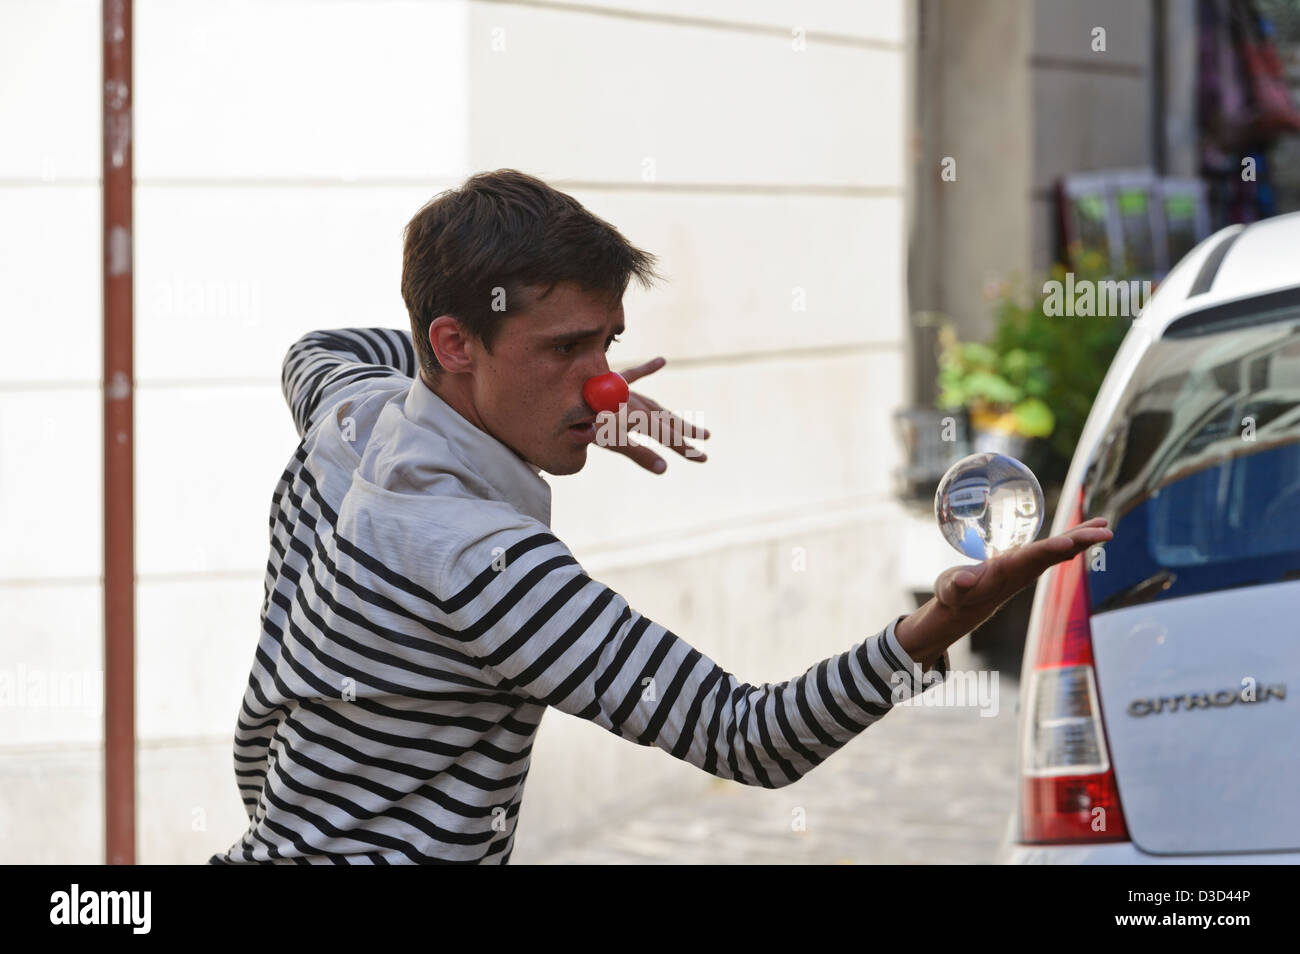 Mime artist performing on Montmartre street, Paris, France. - Stock Image